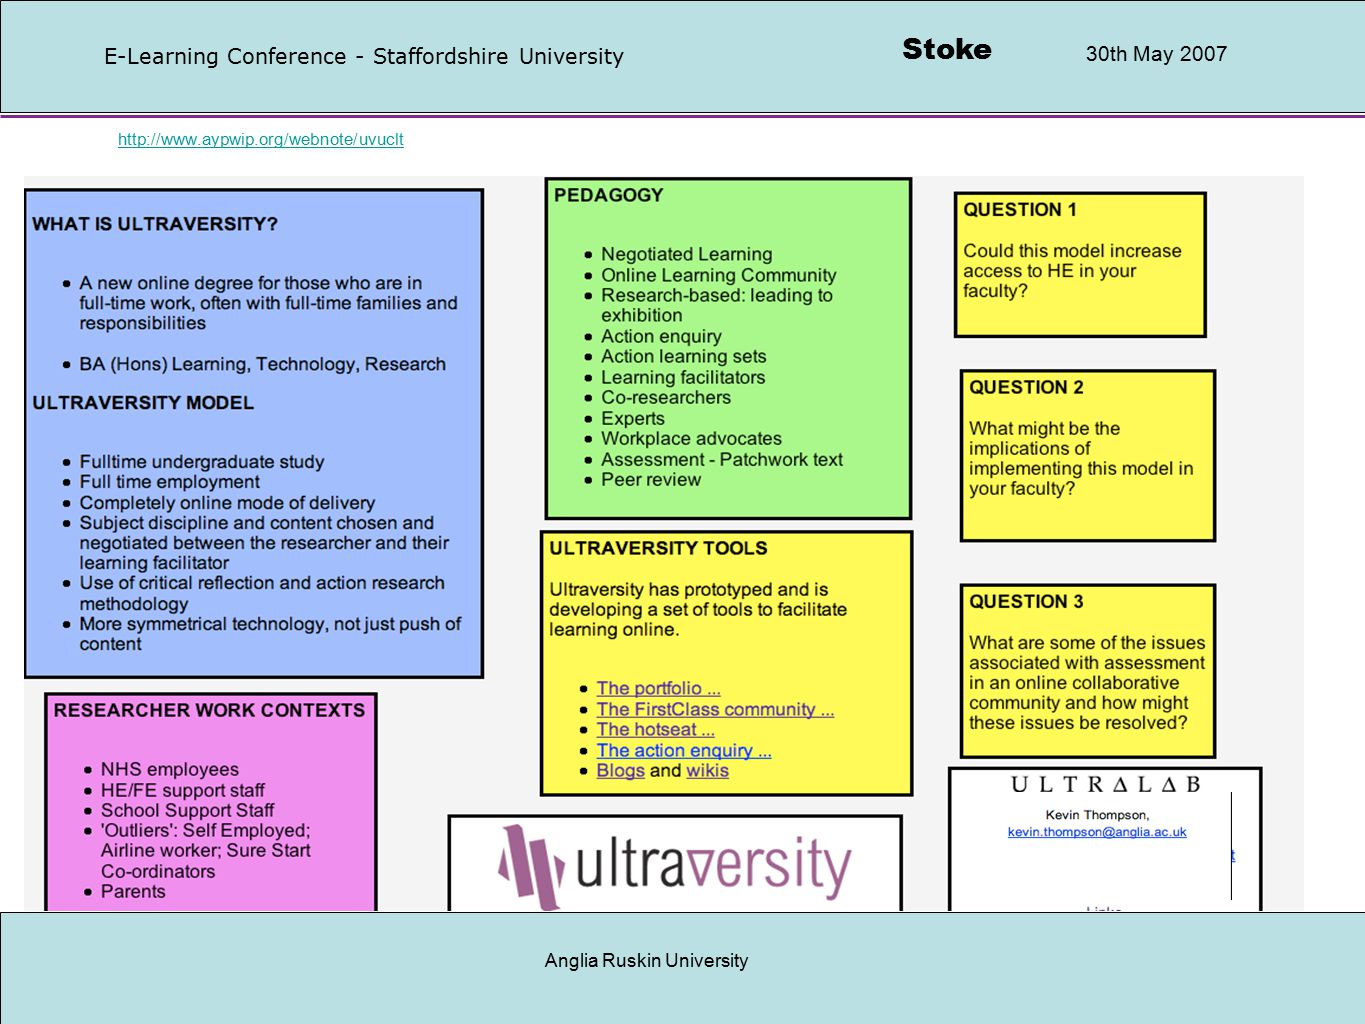 Stoke 30th May 2007 E-Learning Conference - Staffordshire University Anglia Ruskin University Collaborative bookmarks http://www.recap.ltd.uk/podcasting/archive.php http://www.sandaigprimary.co.uk/radio_sandaig/index.php http://www.flickr.comhttp://www.flickr.com or http://photobucket.comhttp://photobucket.com http://www.clustrmap.com http://www.furl.net/http://www.furl.net/ or http://del.icio.us/keltickevhttp://del.icio.us/keltickev http://123.writeboard.com/ http://www.aboutrobertburns.co.uk/